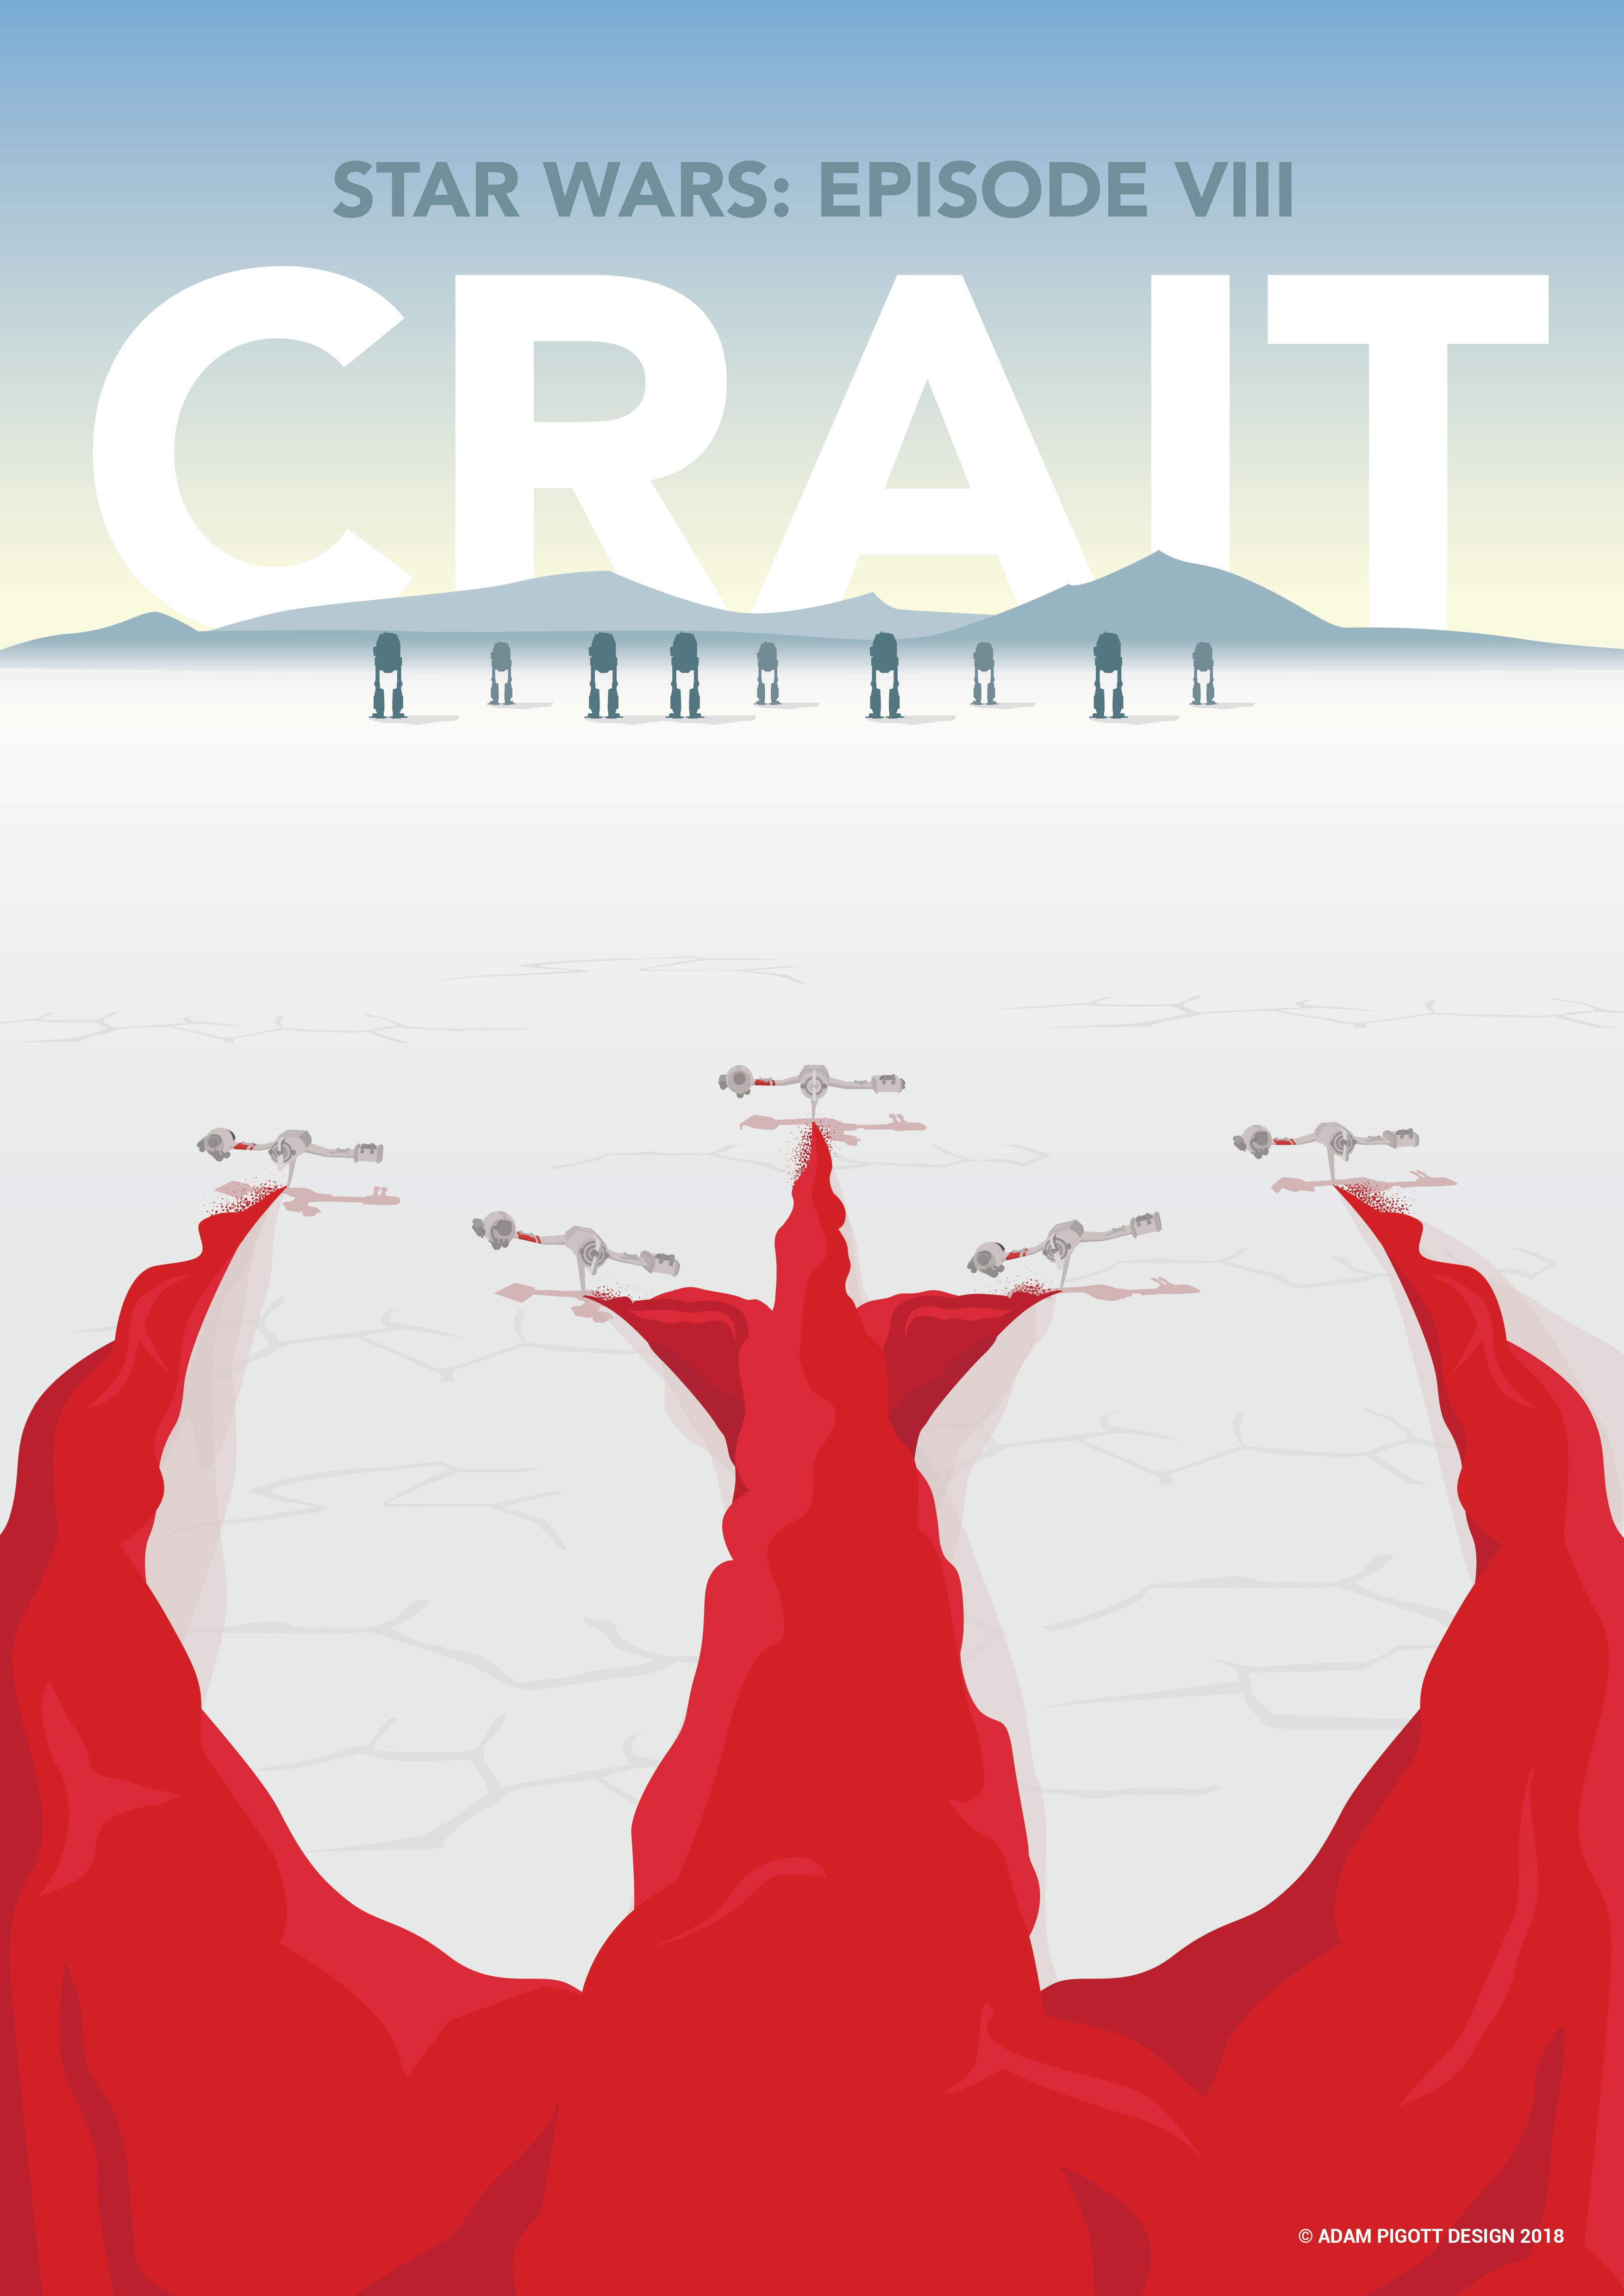 Movie Poster Inspired By Star Wars Episode Viii The Last Jedi Featuring Ski Speeders On The Planet Crait Star Wars Episodes Star Wars Art Star Wars